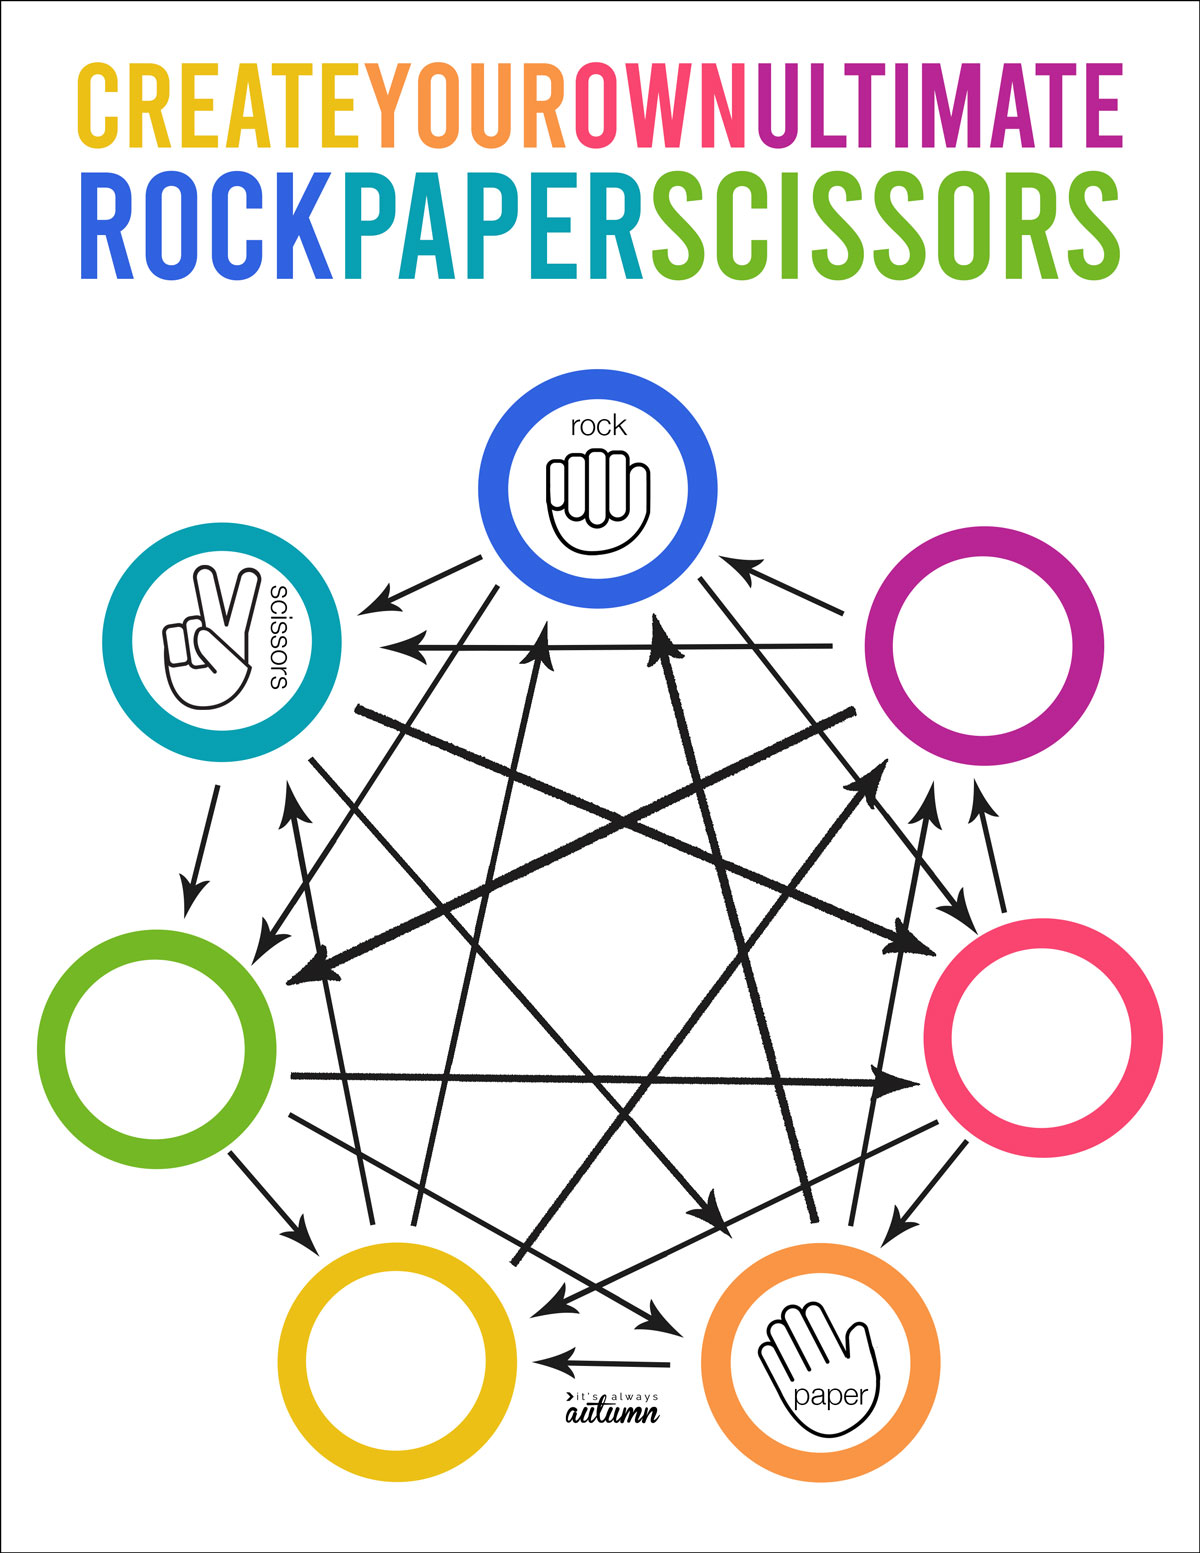 Create your own ULTIMATE rock paper scissors worksheet with 7 options